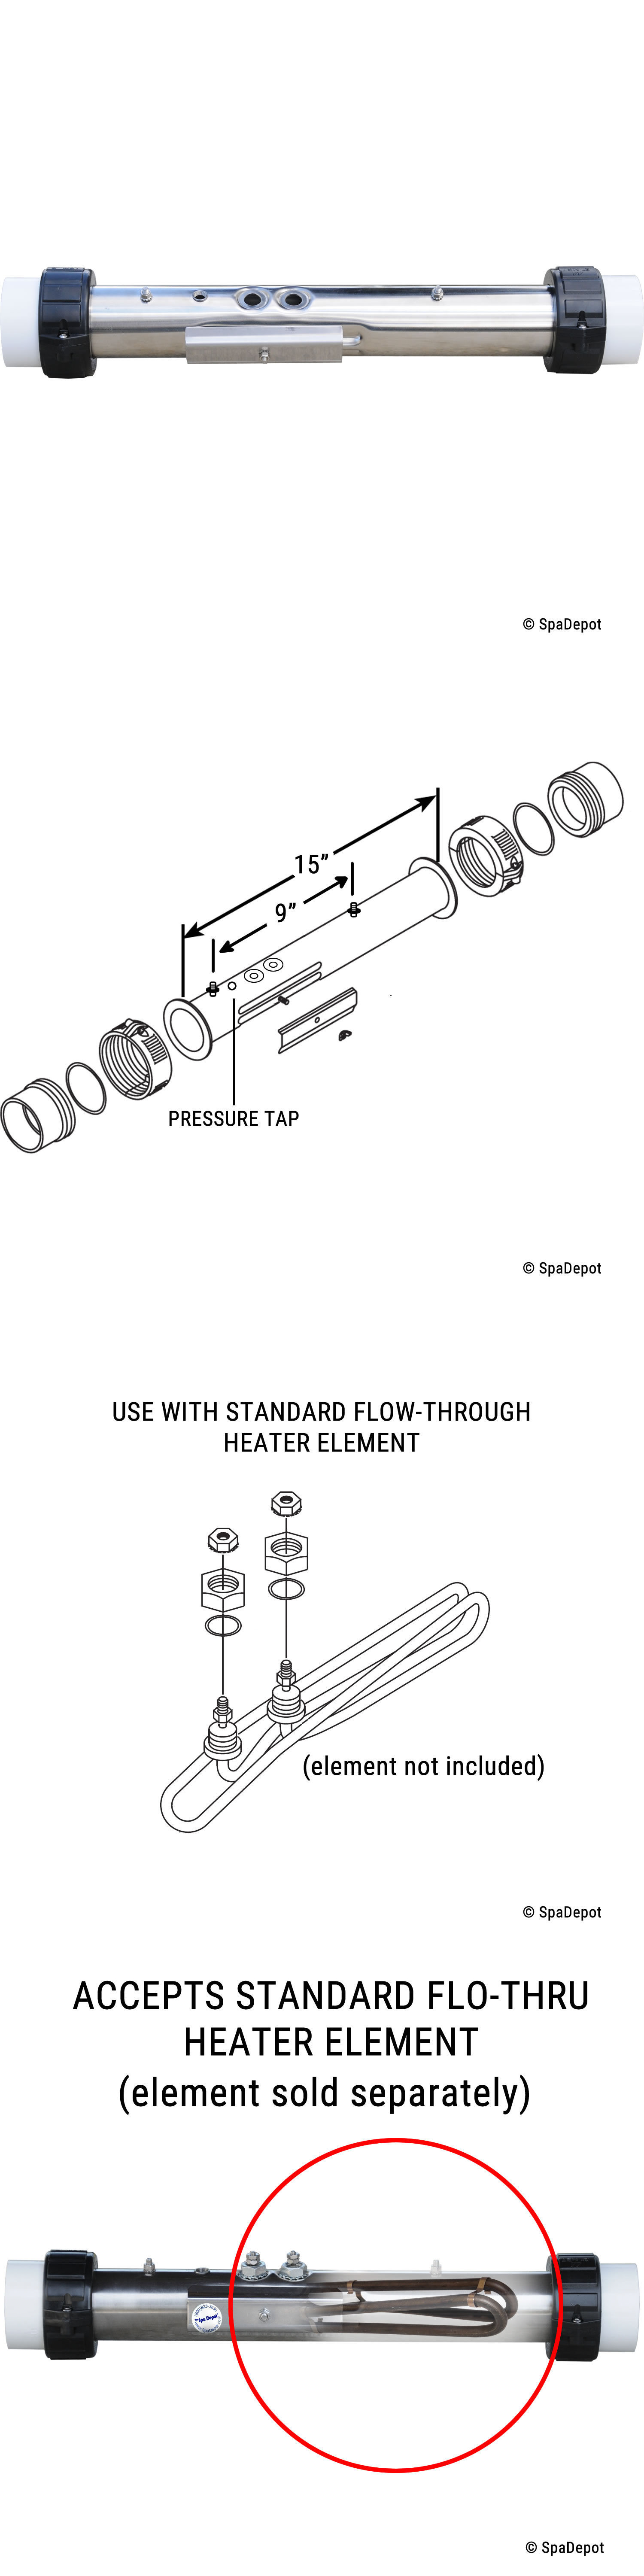 Spa and Hot Tub Parts Flow Thru Spa Heater Manifold For